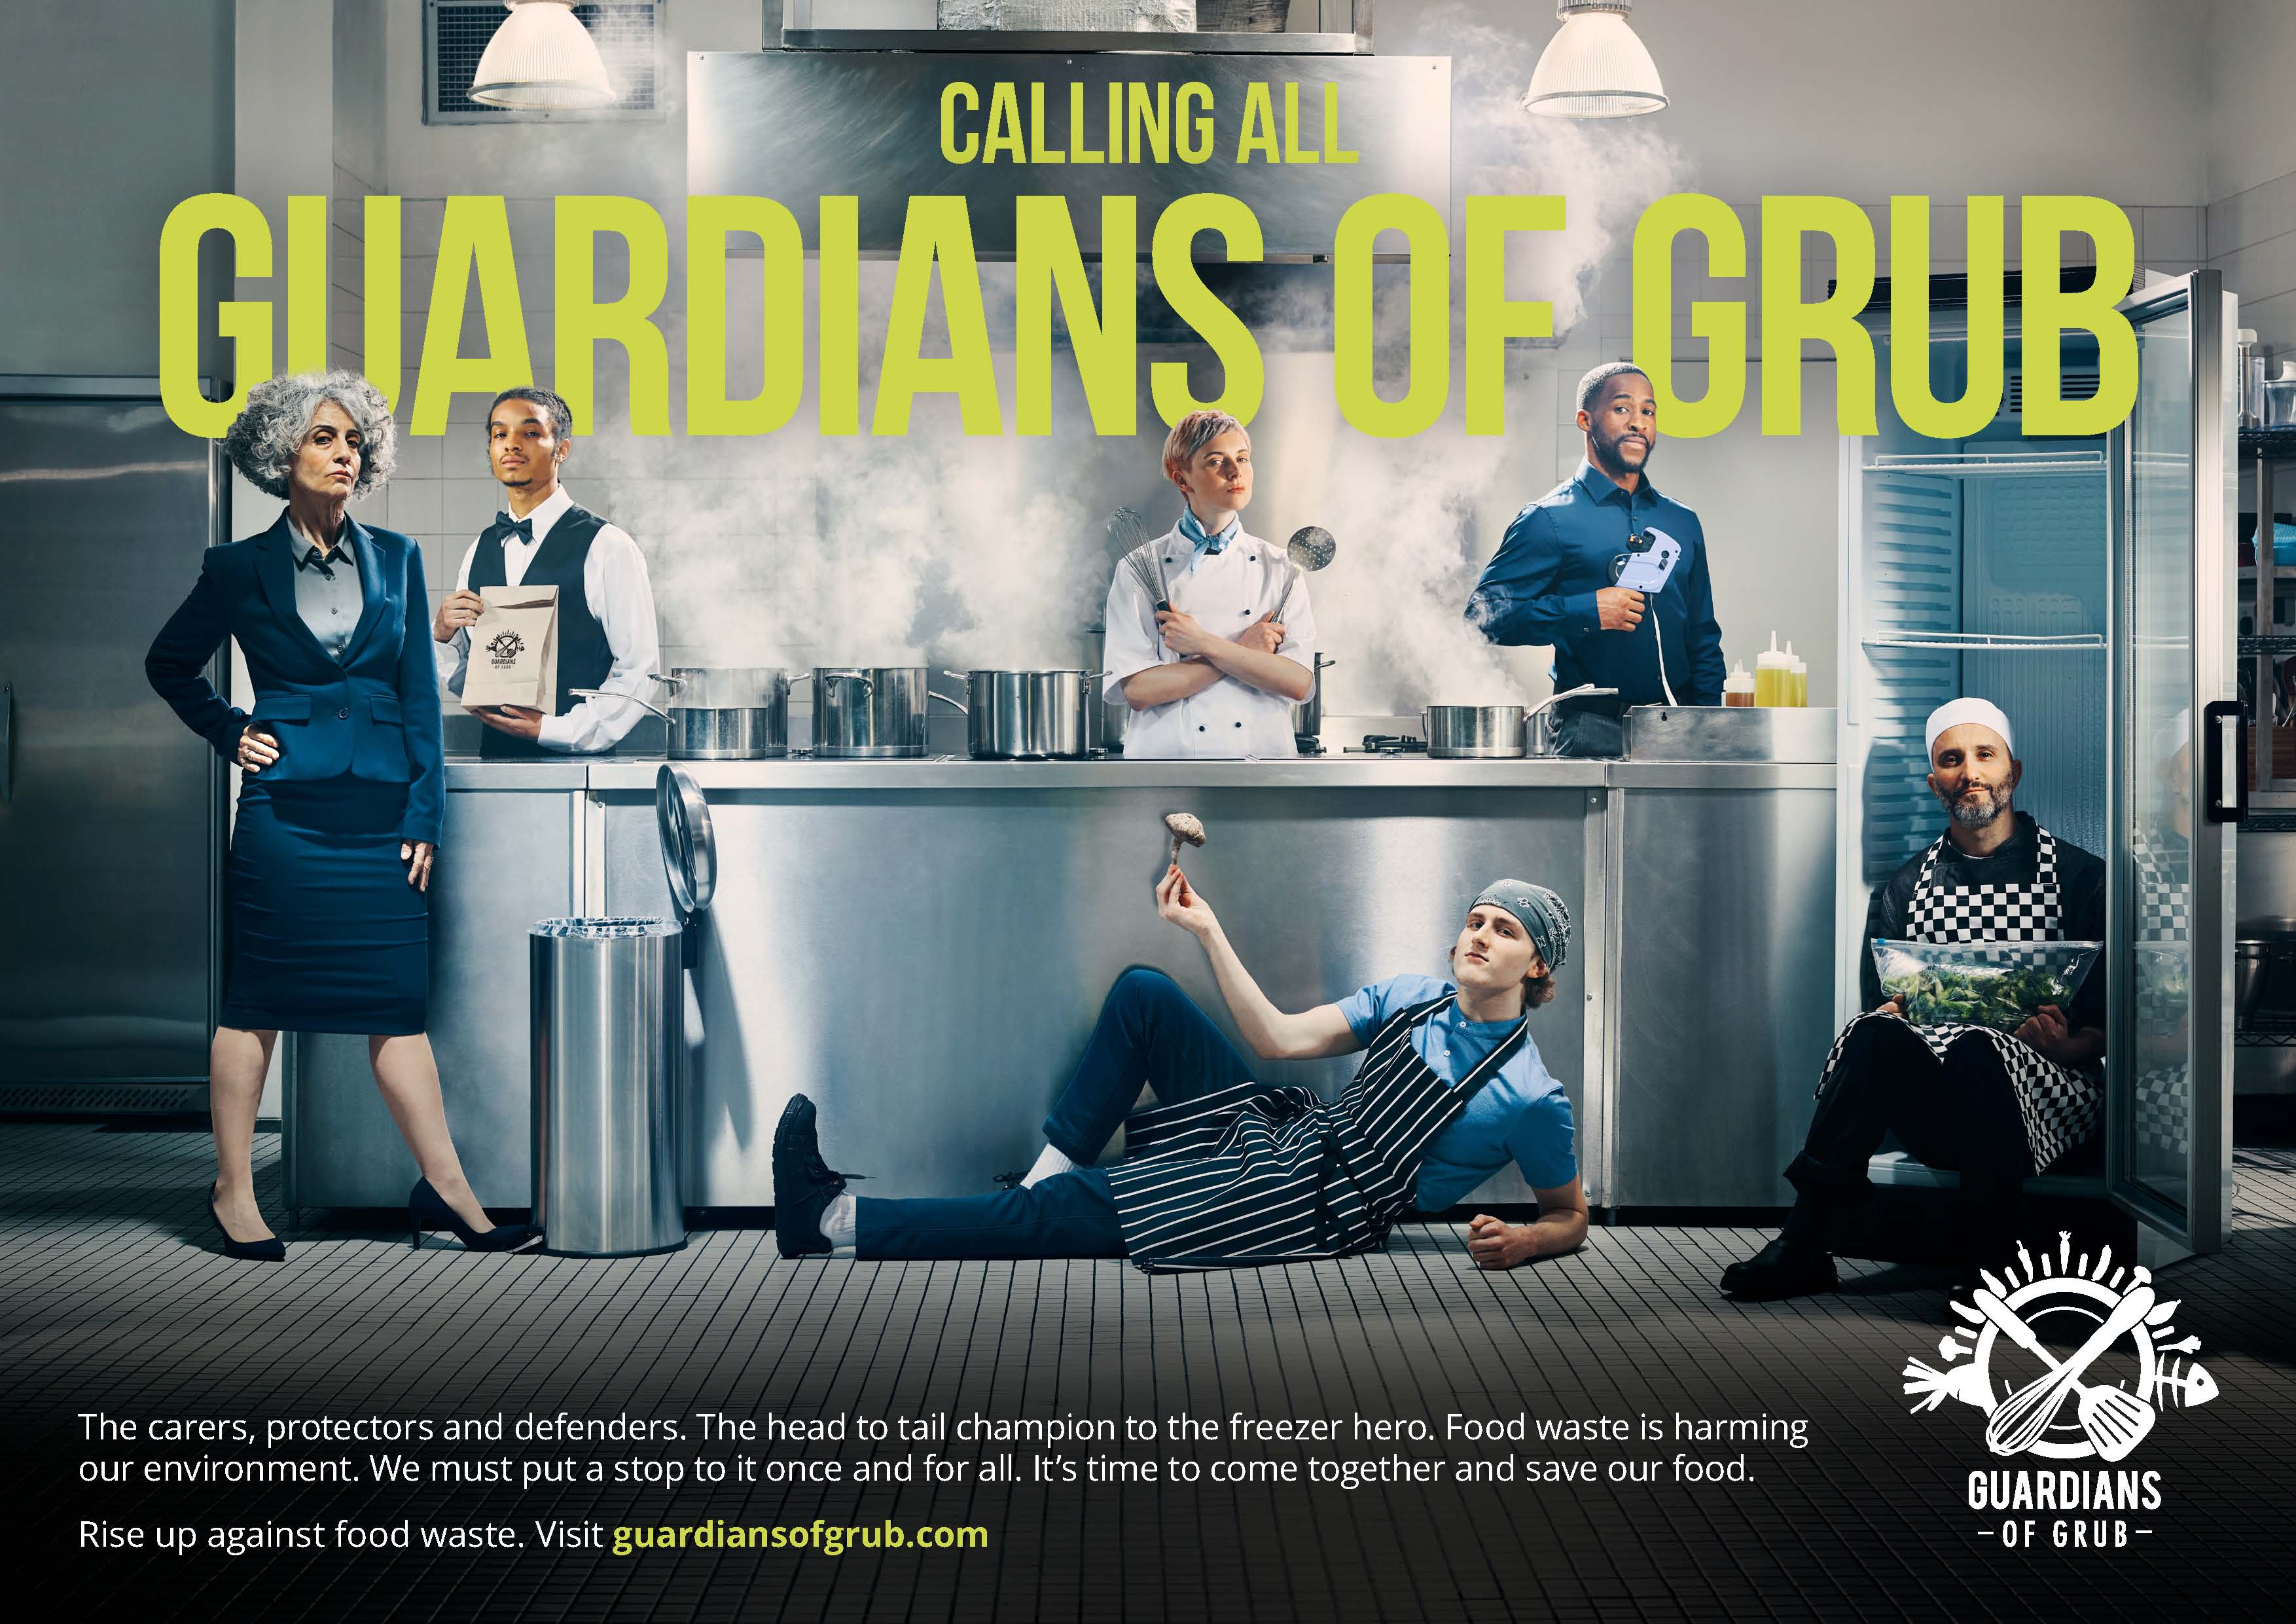 Rise up and join the Guardians of Grub